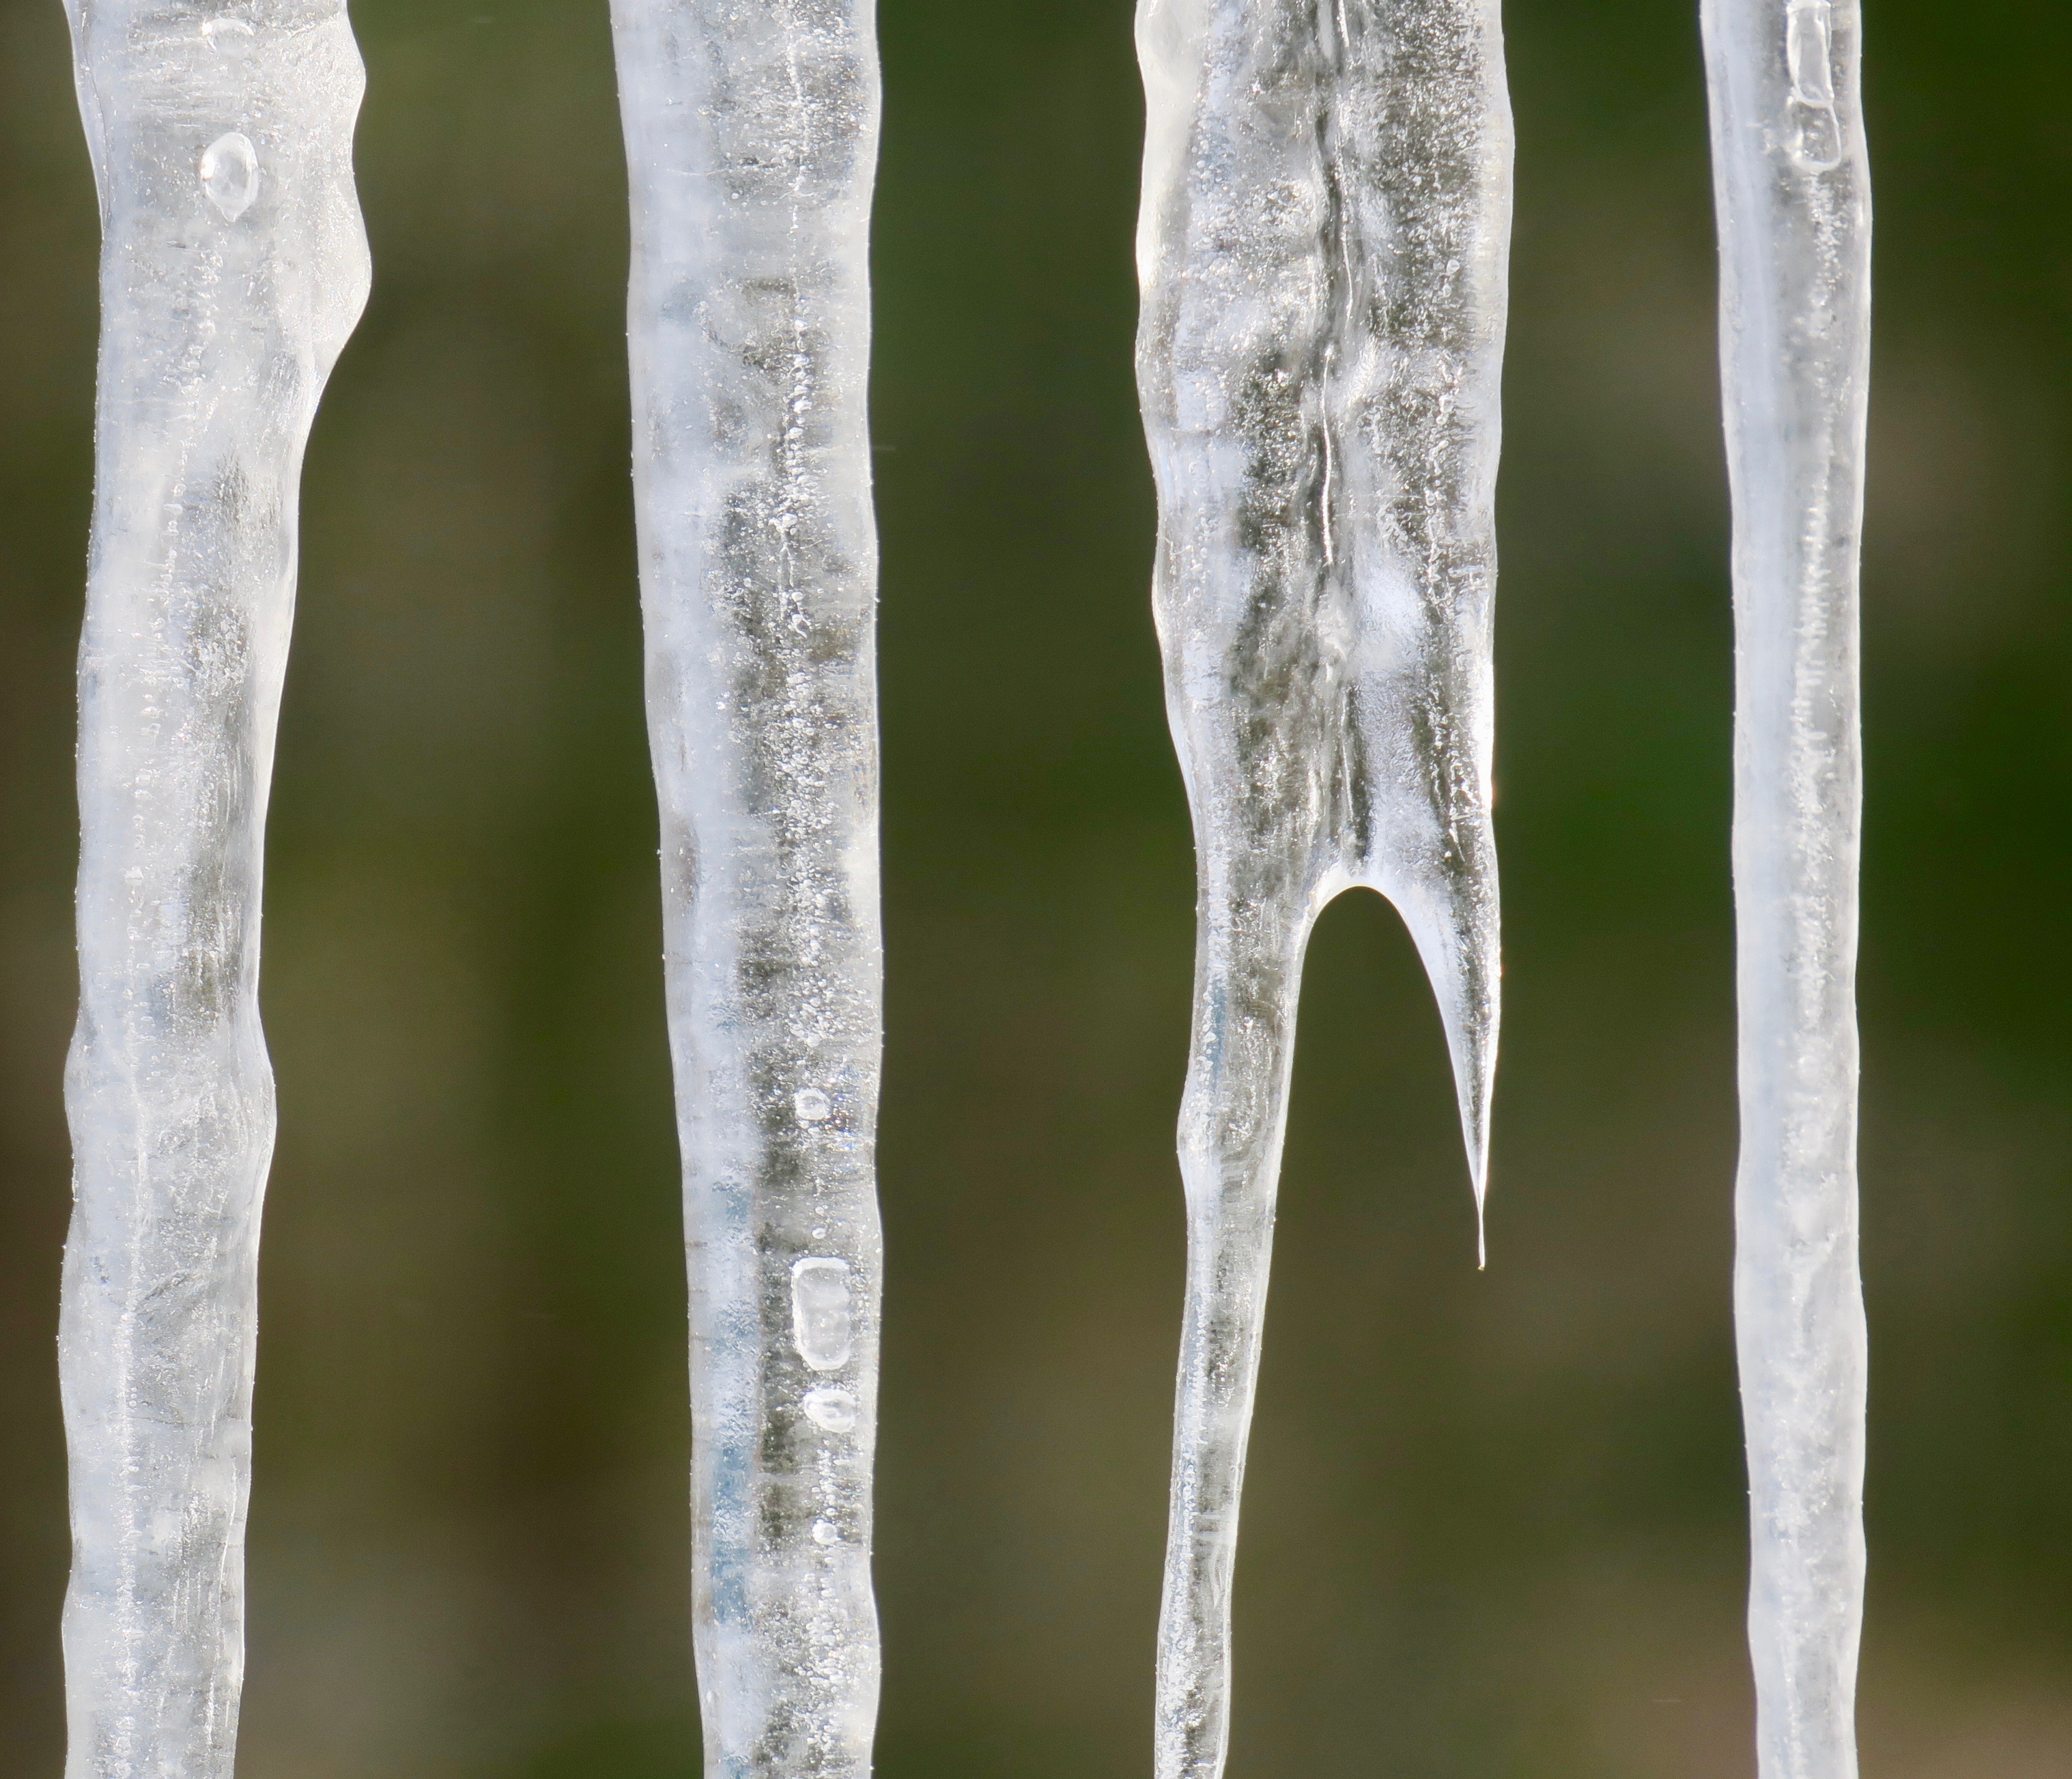 icicles-forming